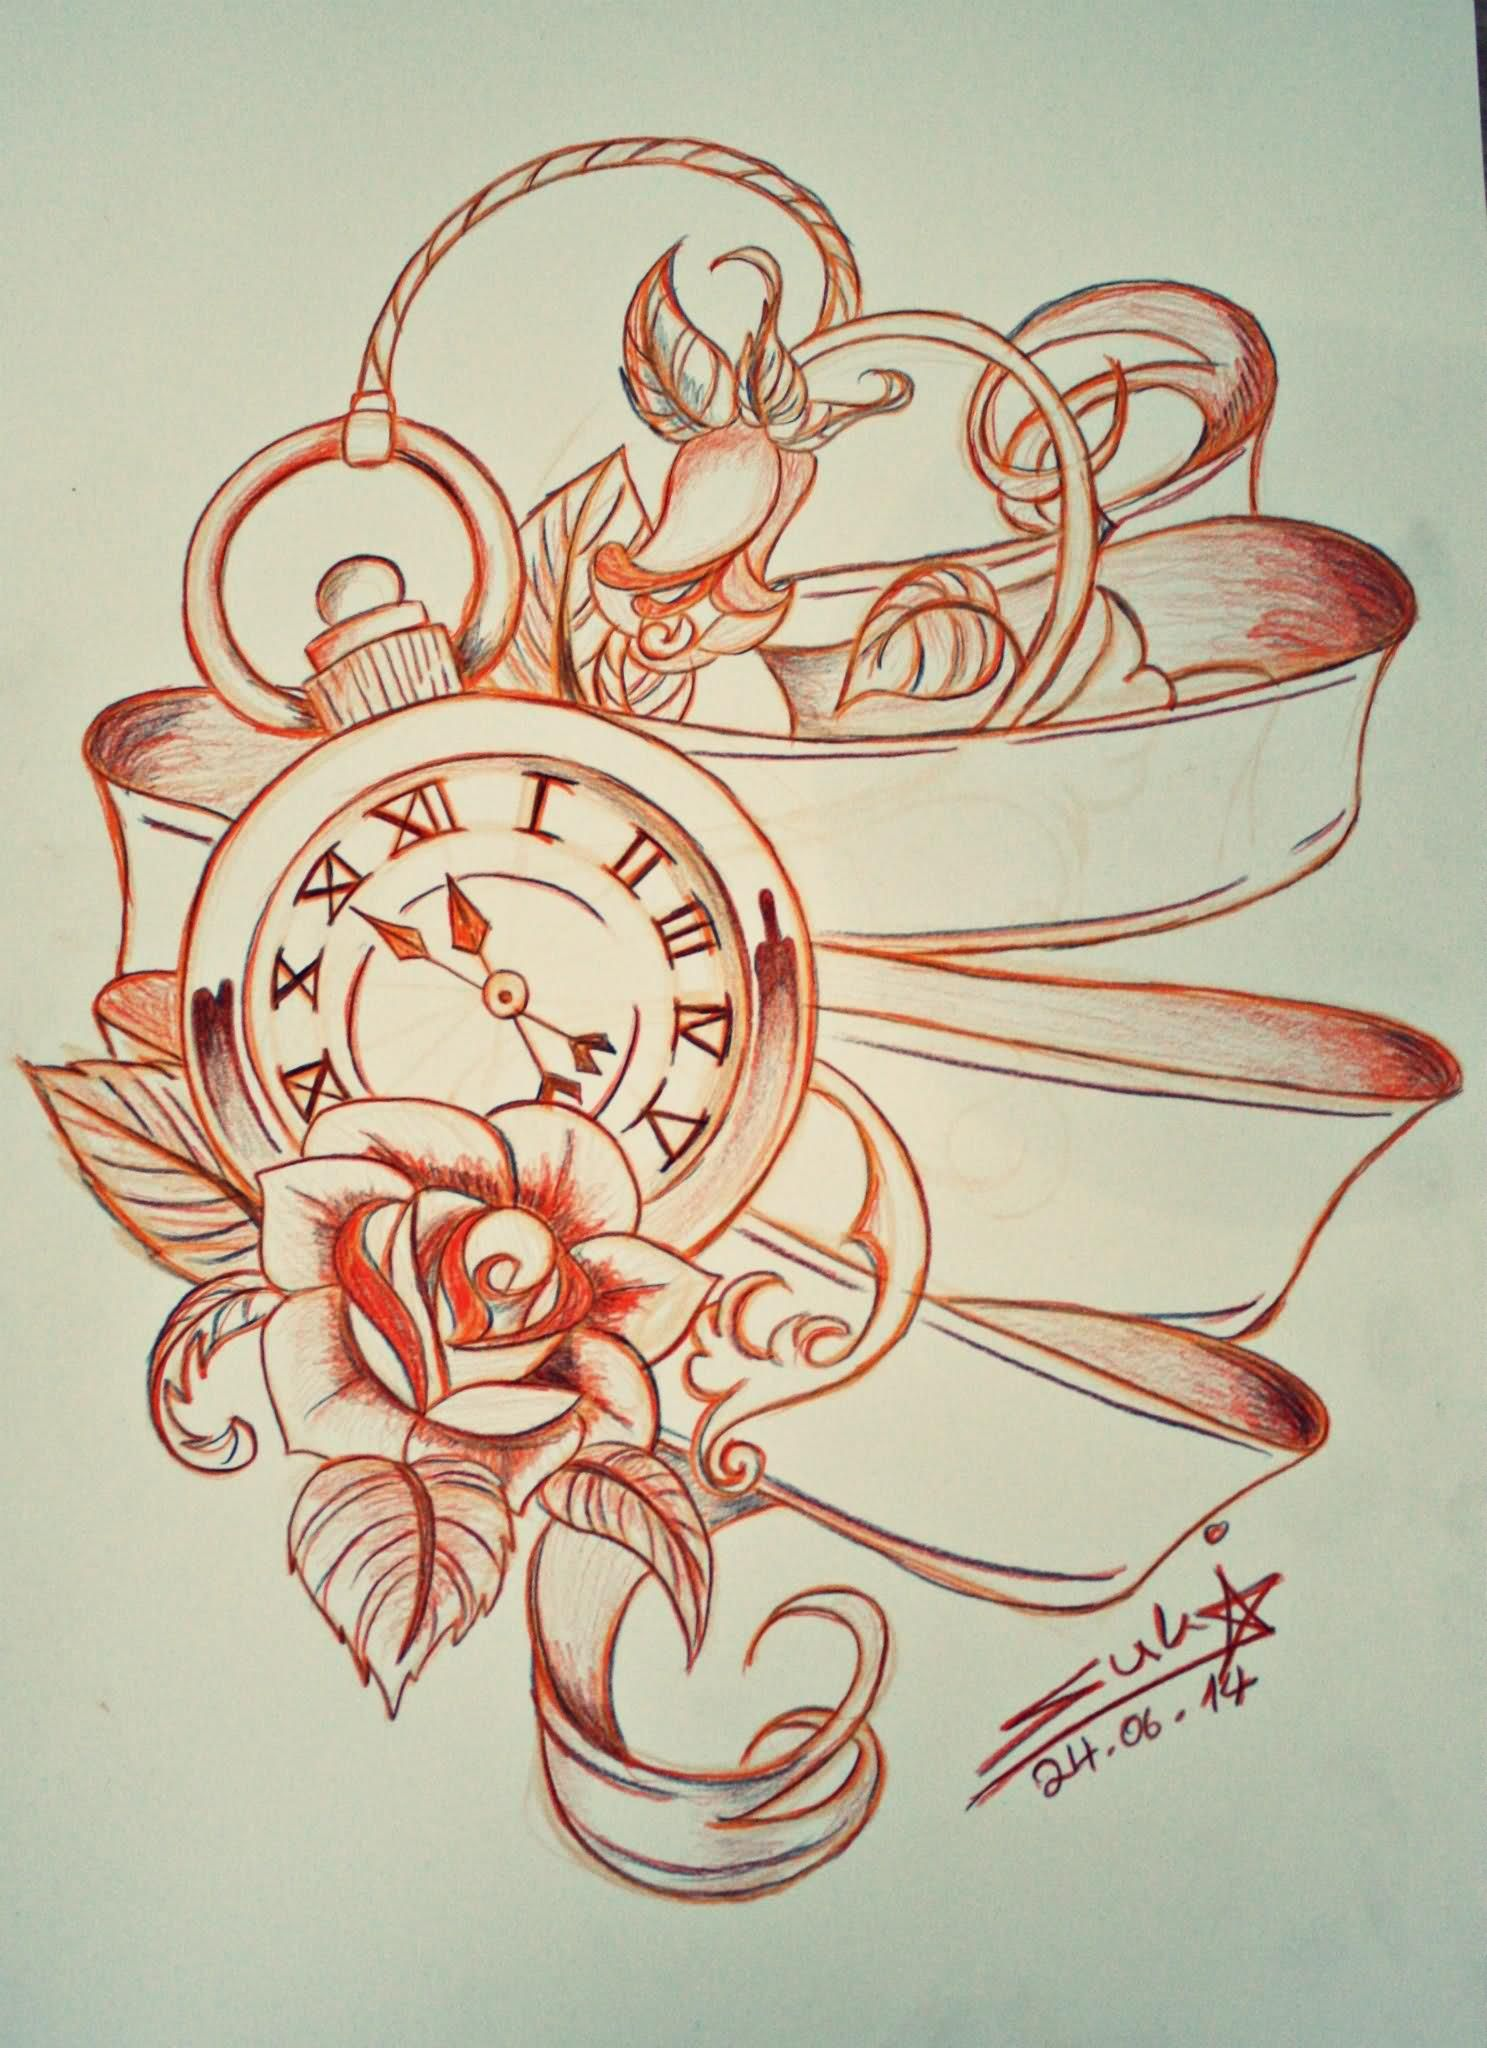 Rose Clock Tattoo Designs Drawing: Pocket Watch With Ribbon And Roses Tattoo Design